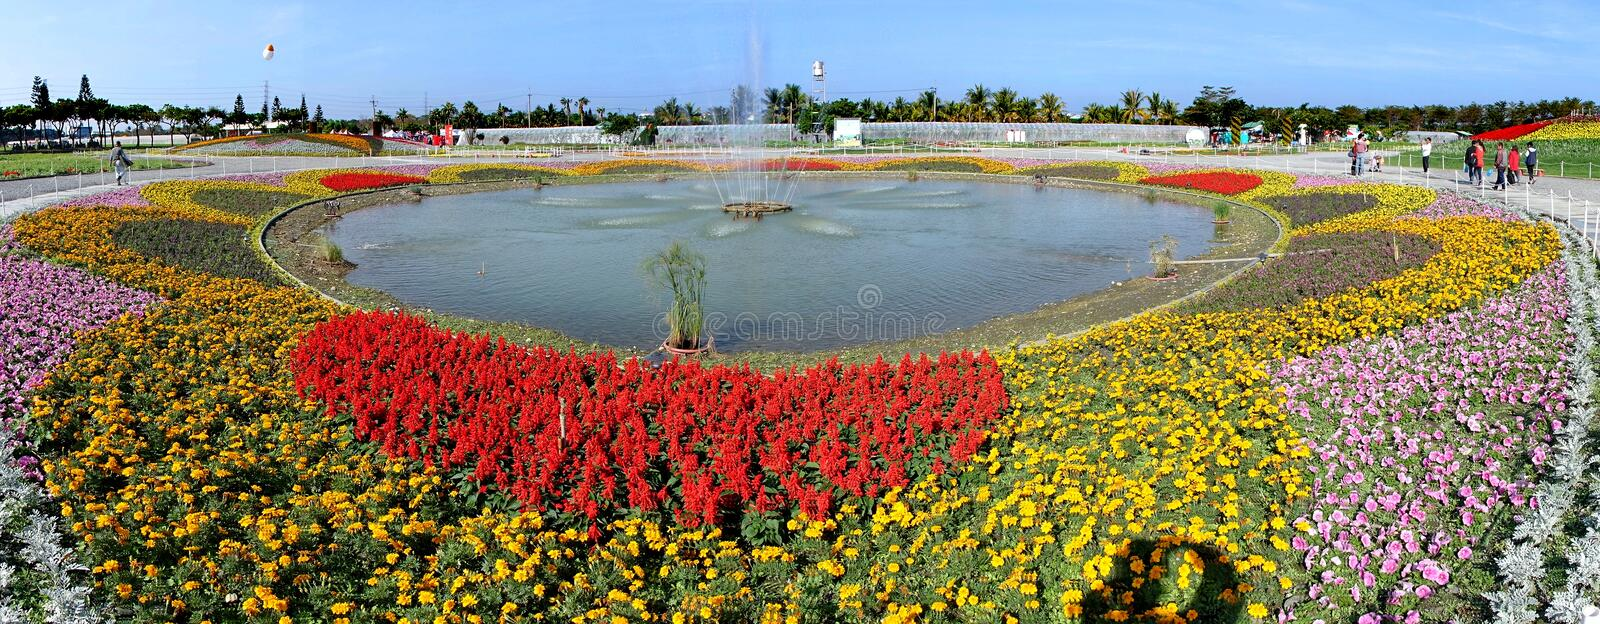 Large Fountain Surrounded by Flower Beds. PINGTUNG, TAIWAN -- FEBRUARY 14, 2018: A large fountain surrounded by colorful flower beds greets visitors at the royalty free stock photography